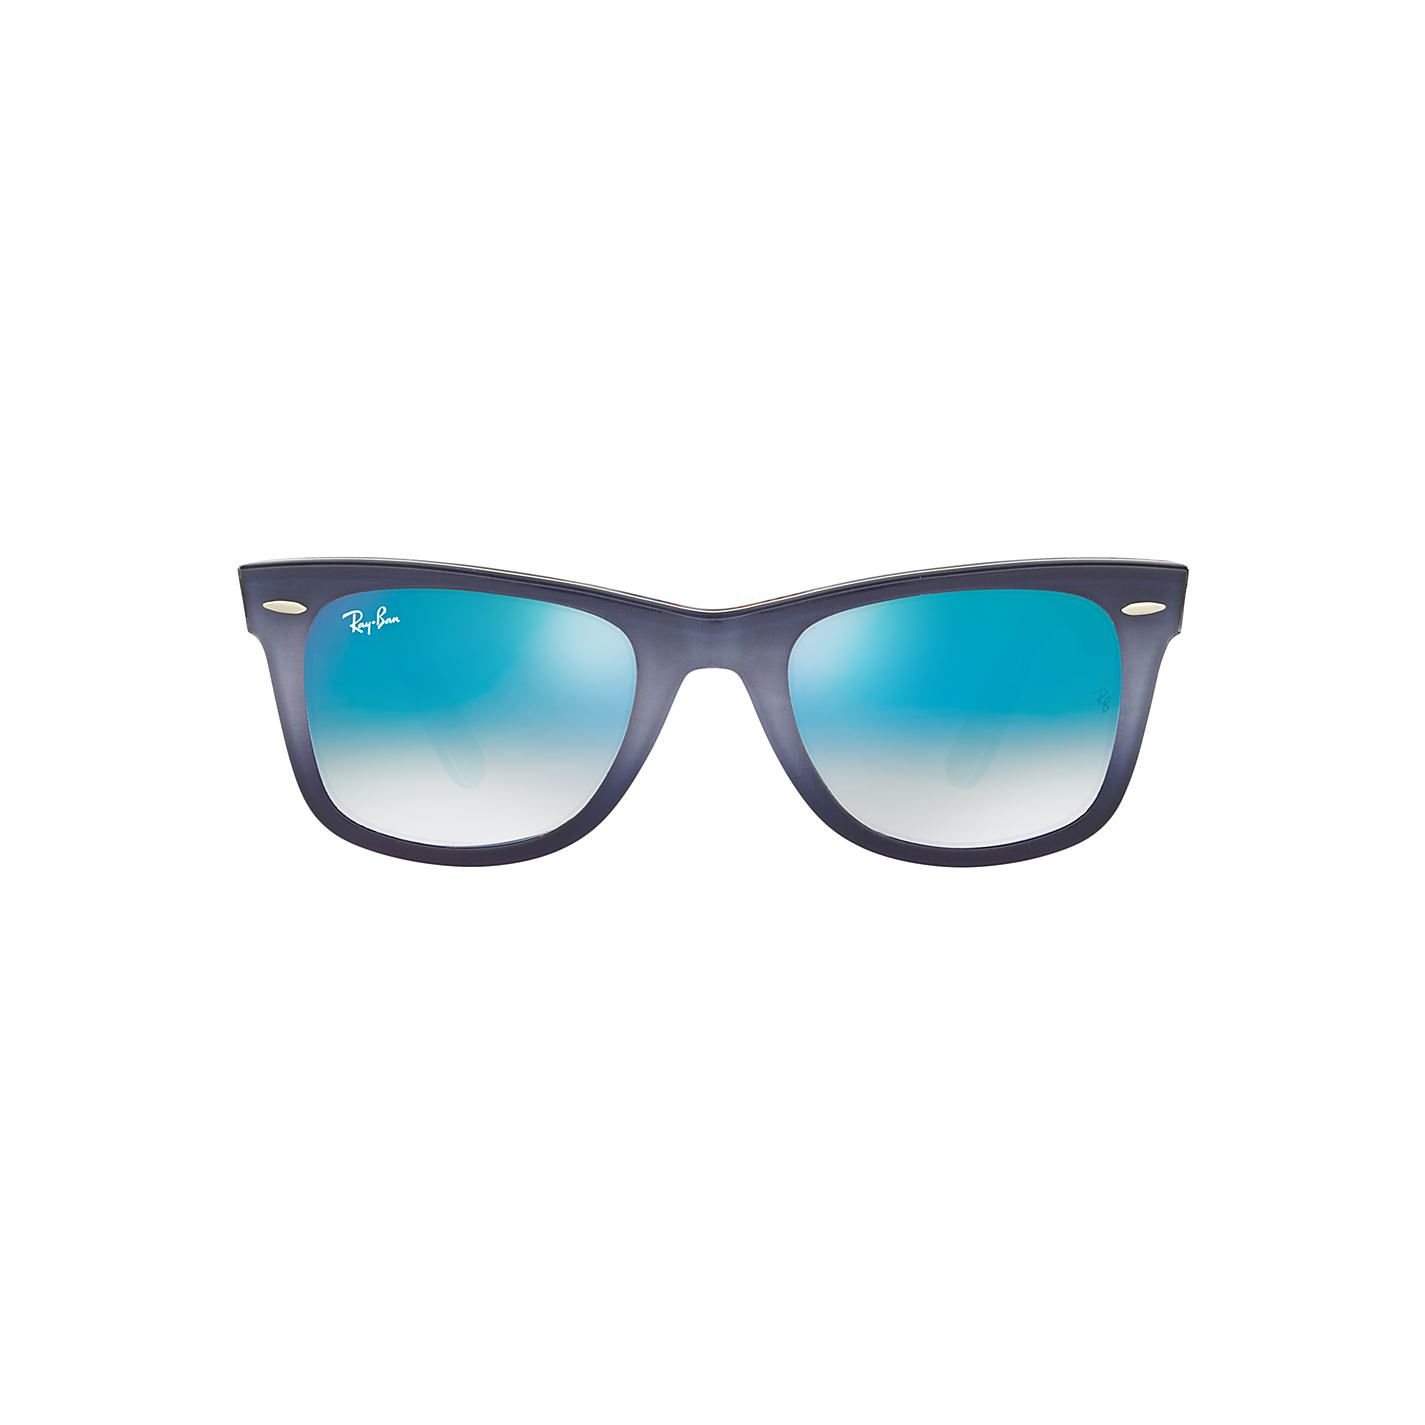 ... Buy Ray-Ban RB2140 Original Wayfarer Sunglasses Online at johnlewis.com ...